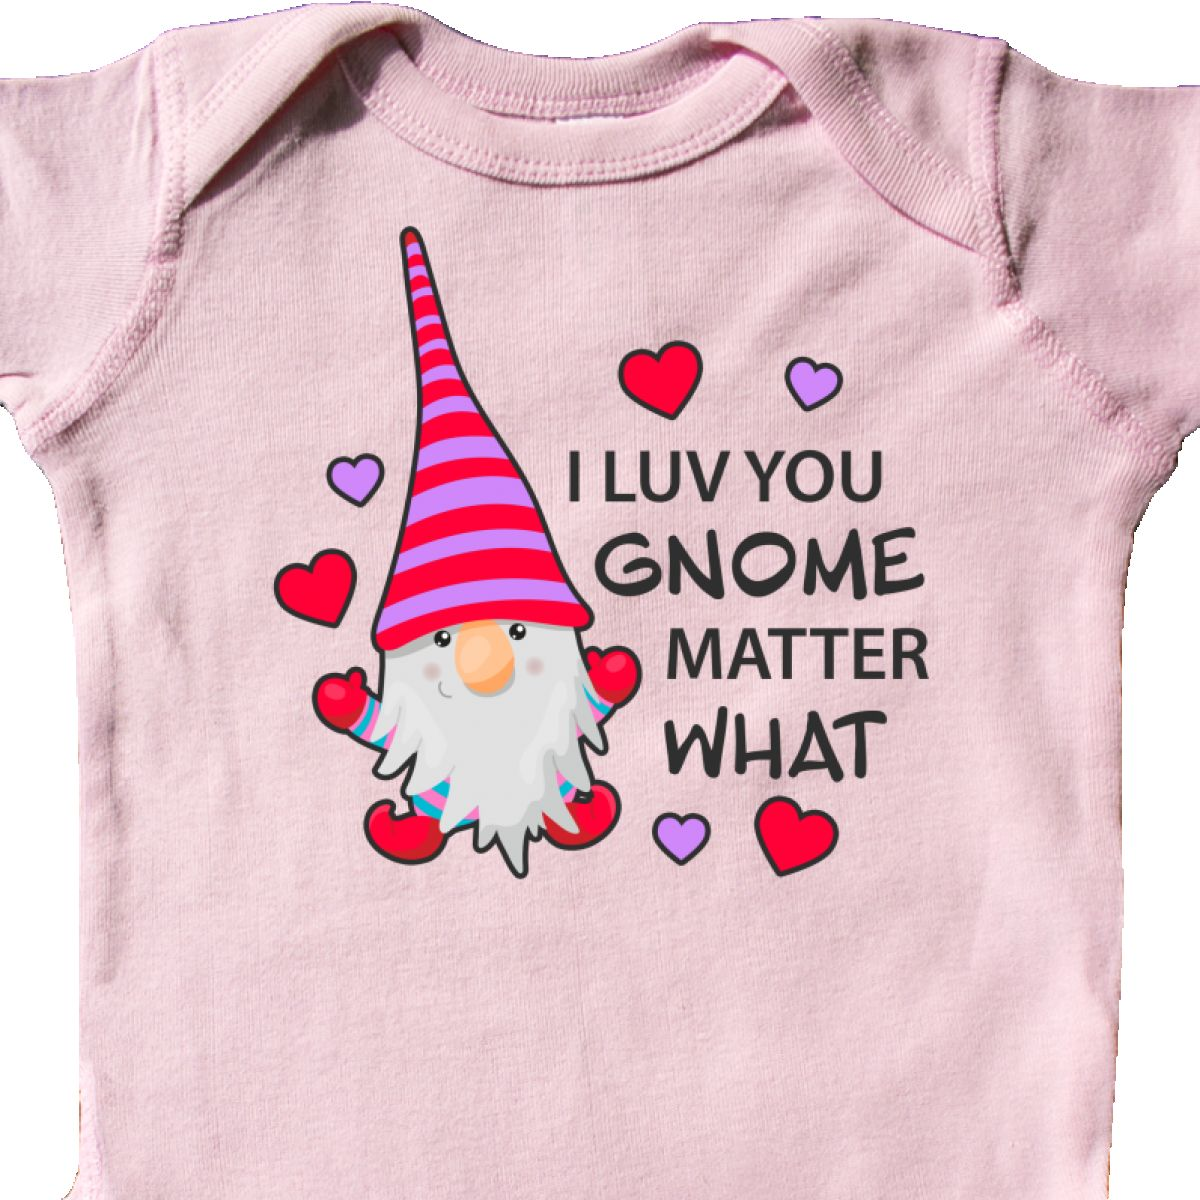 Inktastic-I-Luv-You-Gnome-Matter-What-With-Gnome-And-Hearts-Infant-Creeper-Love 縮圖 18